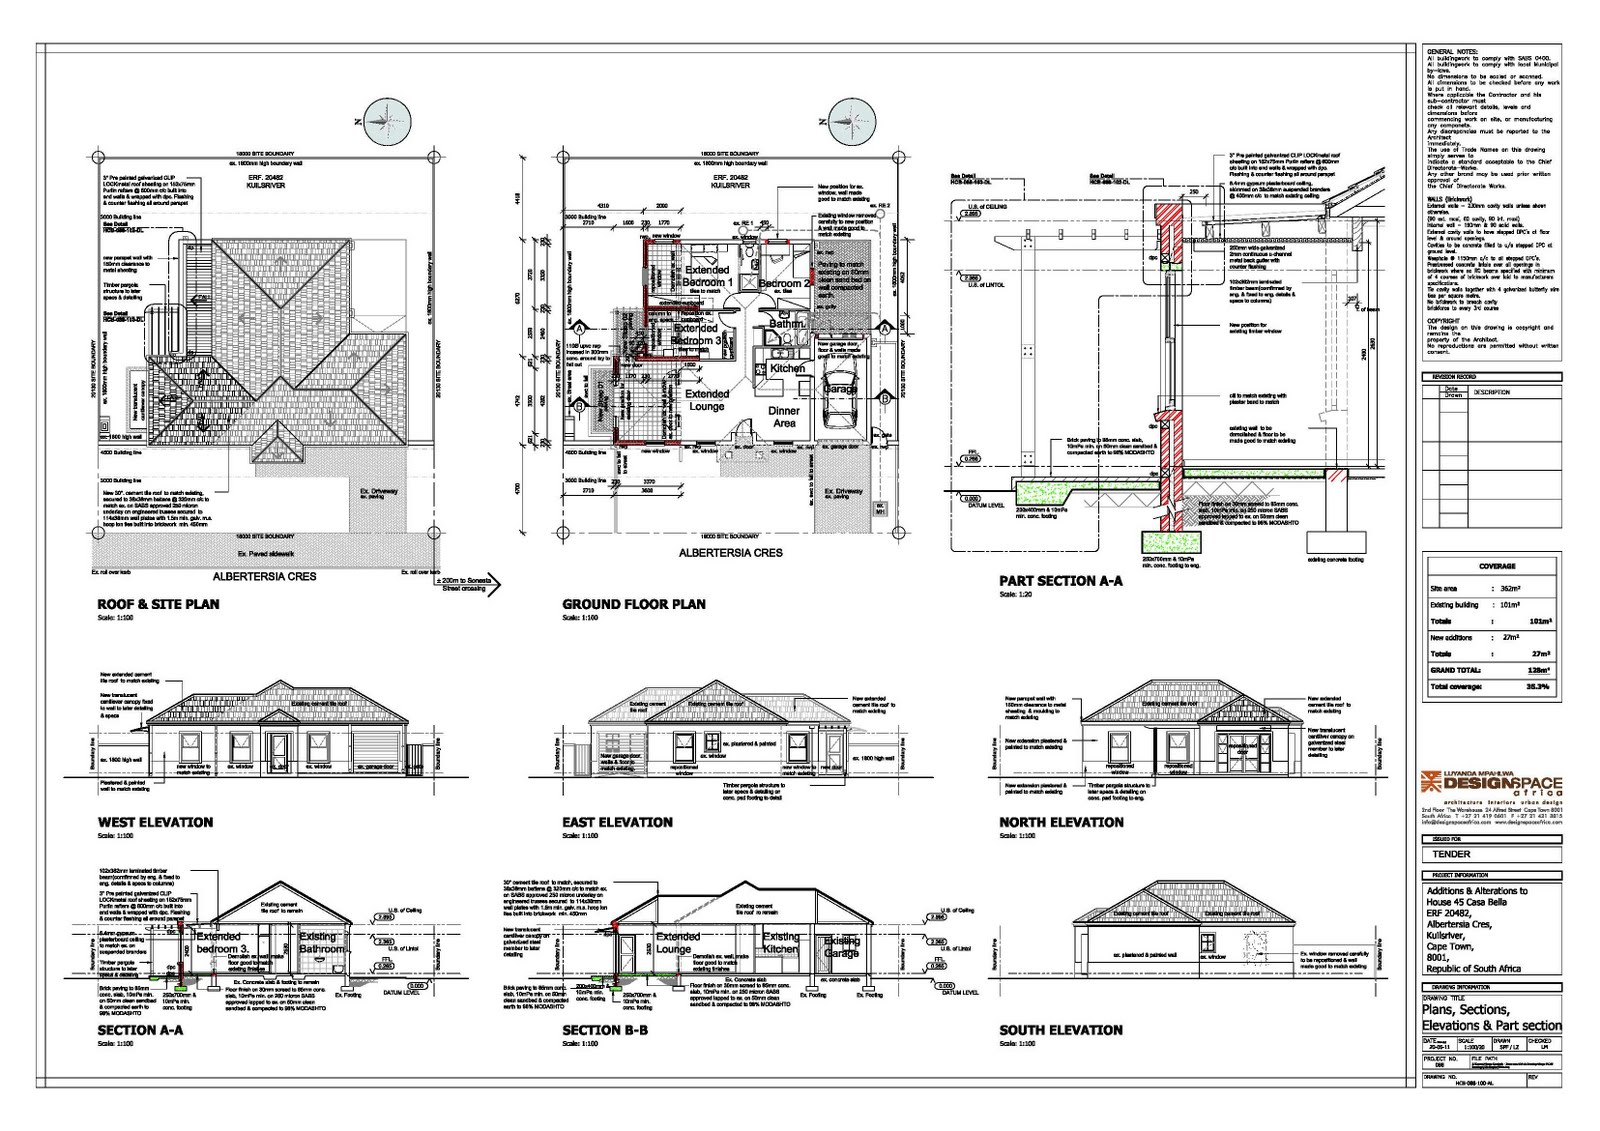 Autocad drafting alhambra homes besides Farm Houses Of Australia additionally Elevation In Autocad additionally Stock Image Engineering Architecture Drawings Pencil Image29068061 also Stock Photo Blueprint Floor Plan Technical Drawing Construction Background Architectural Project Architectural Architectural Image71787902. on architectural drafting of house plans